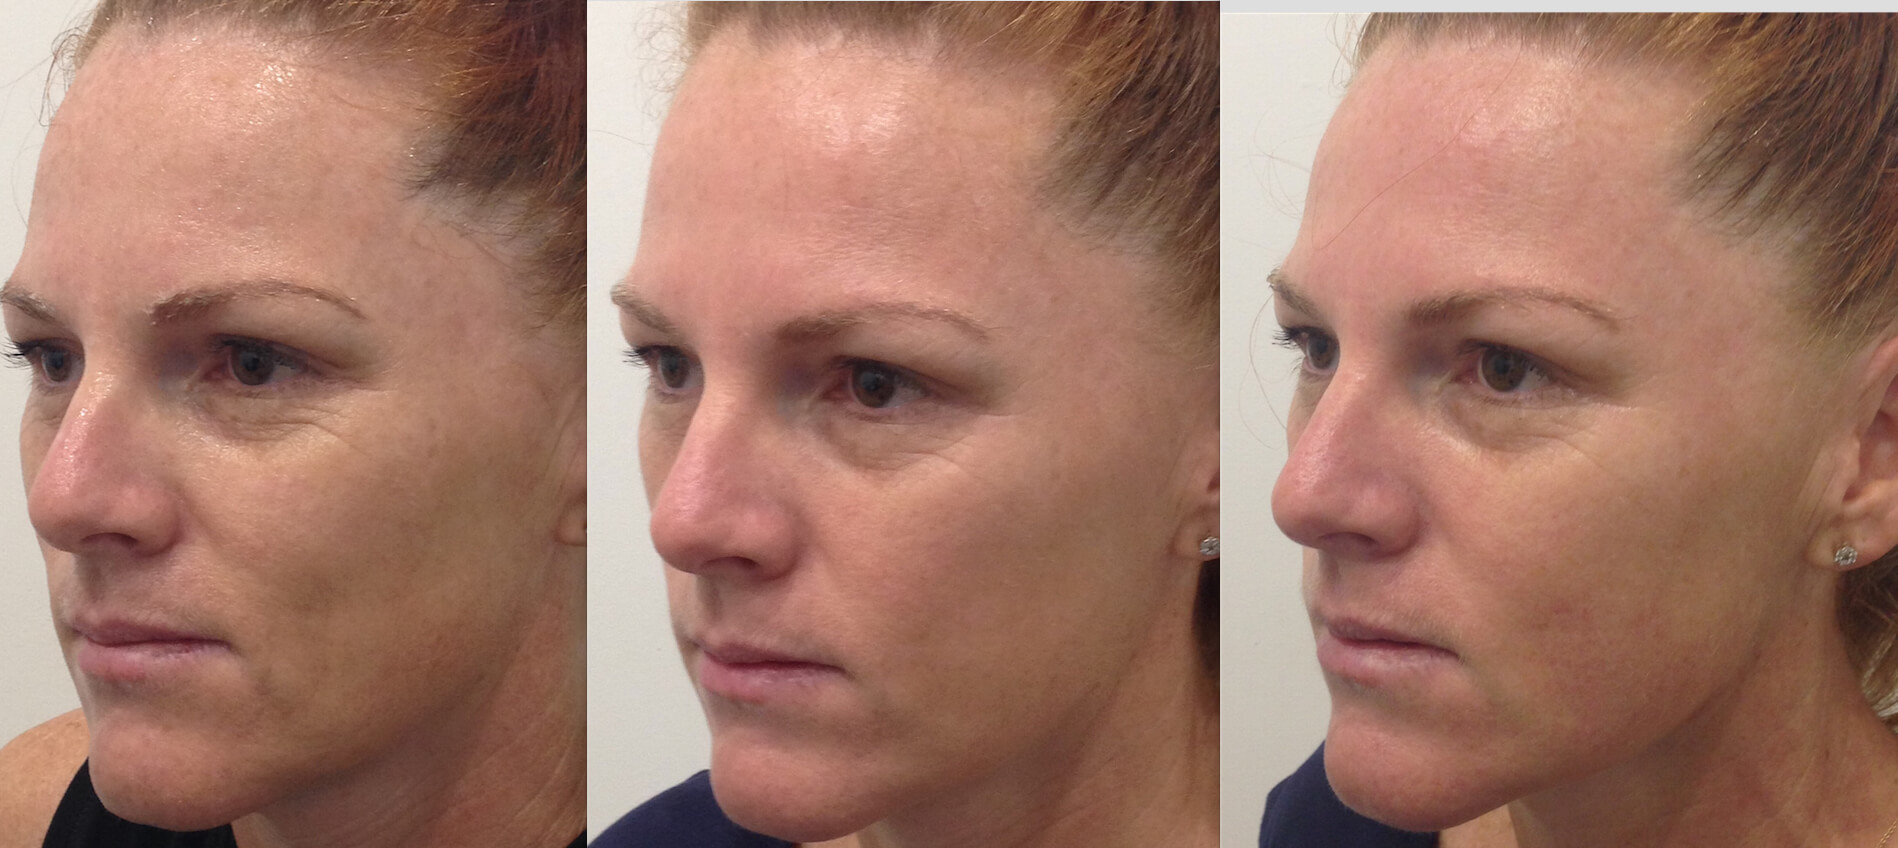 Hifu Non Surgical Face Lift Cosmedical Skin Solutions Perth